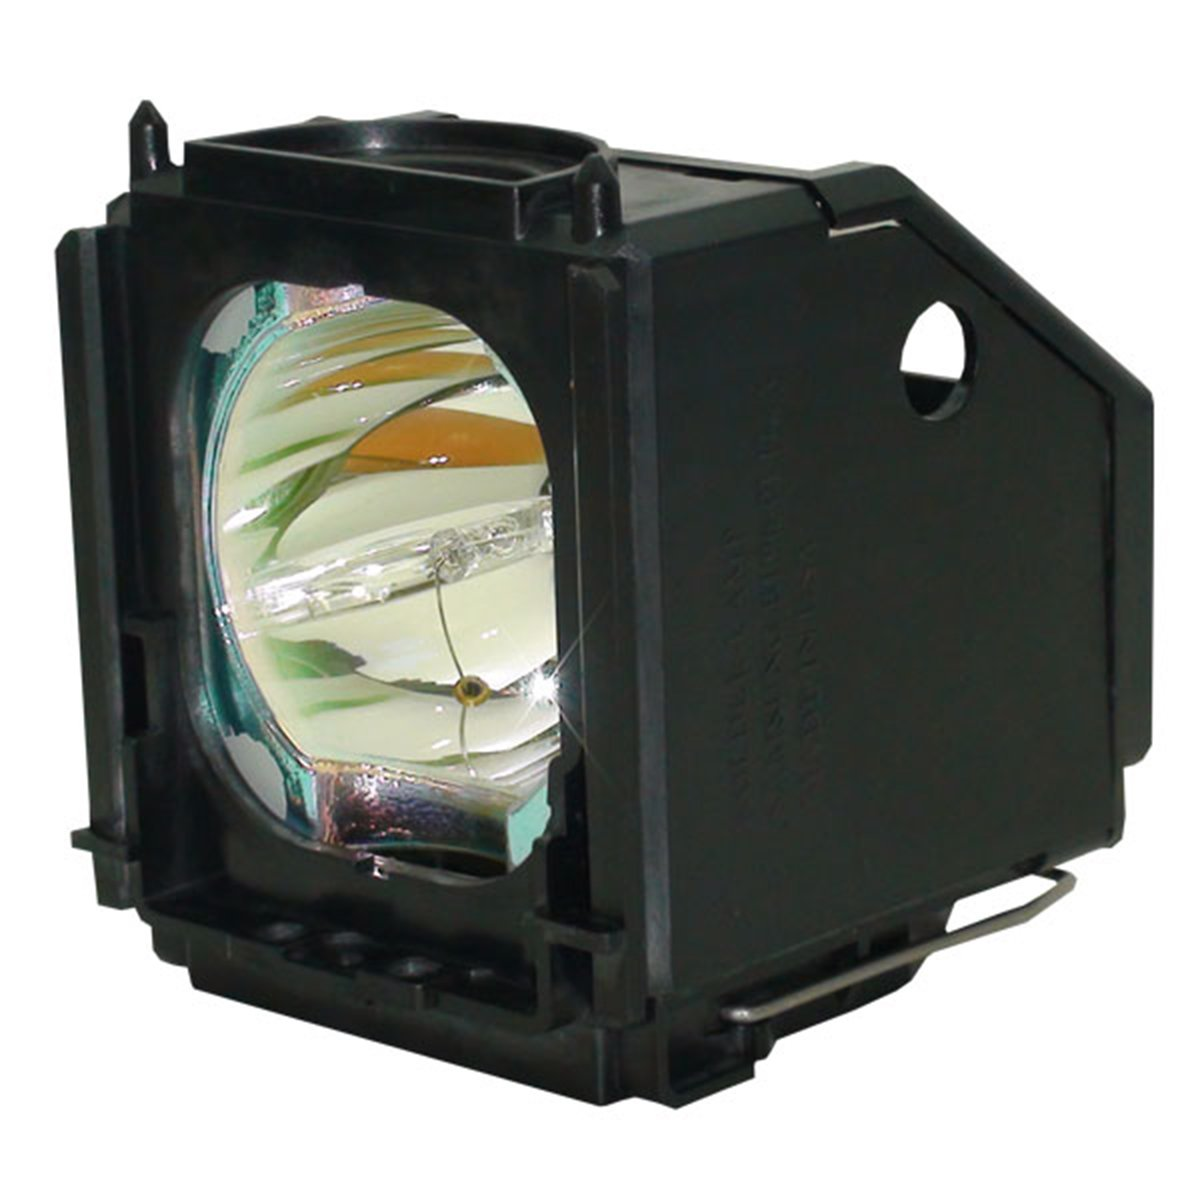 SpArc Platinum for Samsung HLS6186WX/XAA TV Lamp with Enclosure (Original Philips Bulb Inside)